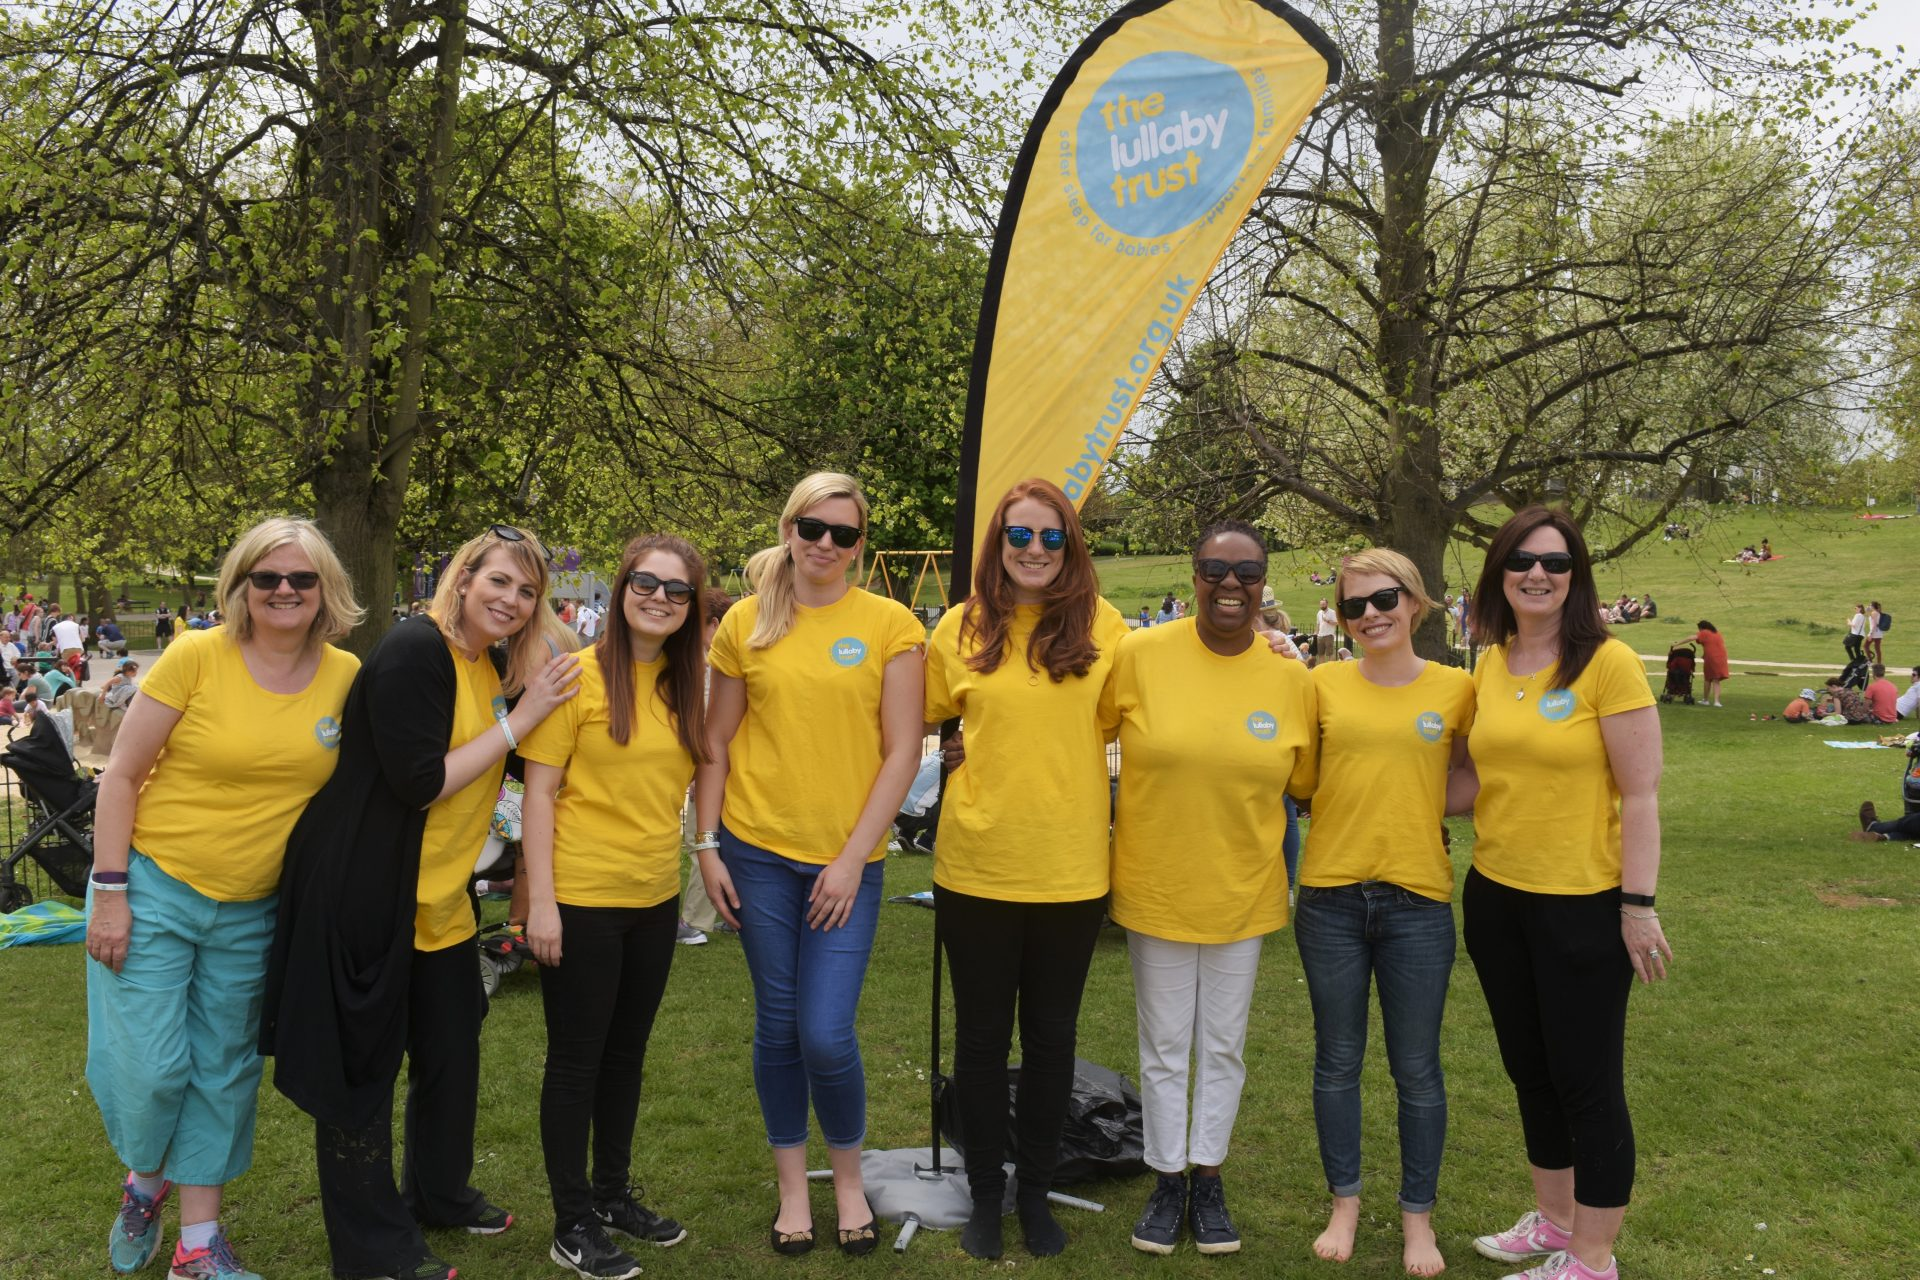 The Lullaby Trust Staff